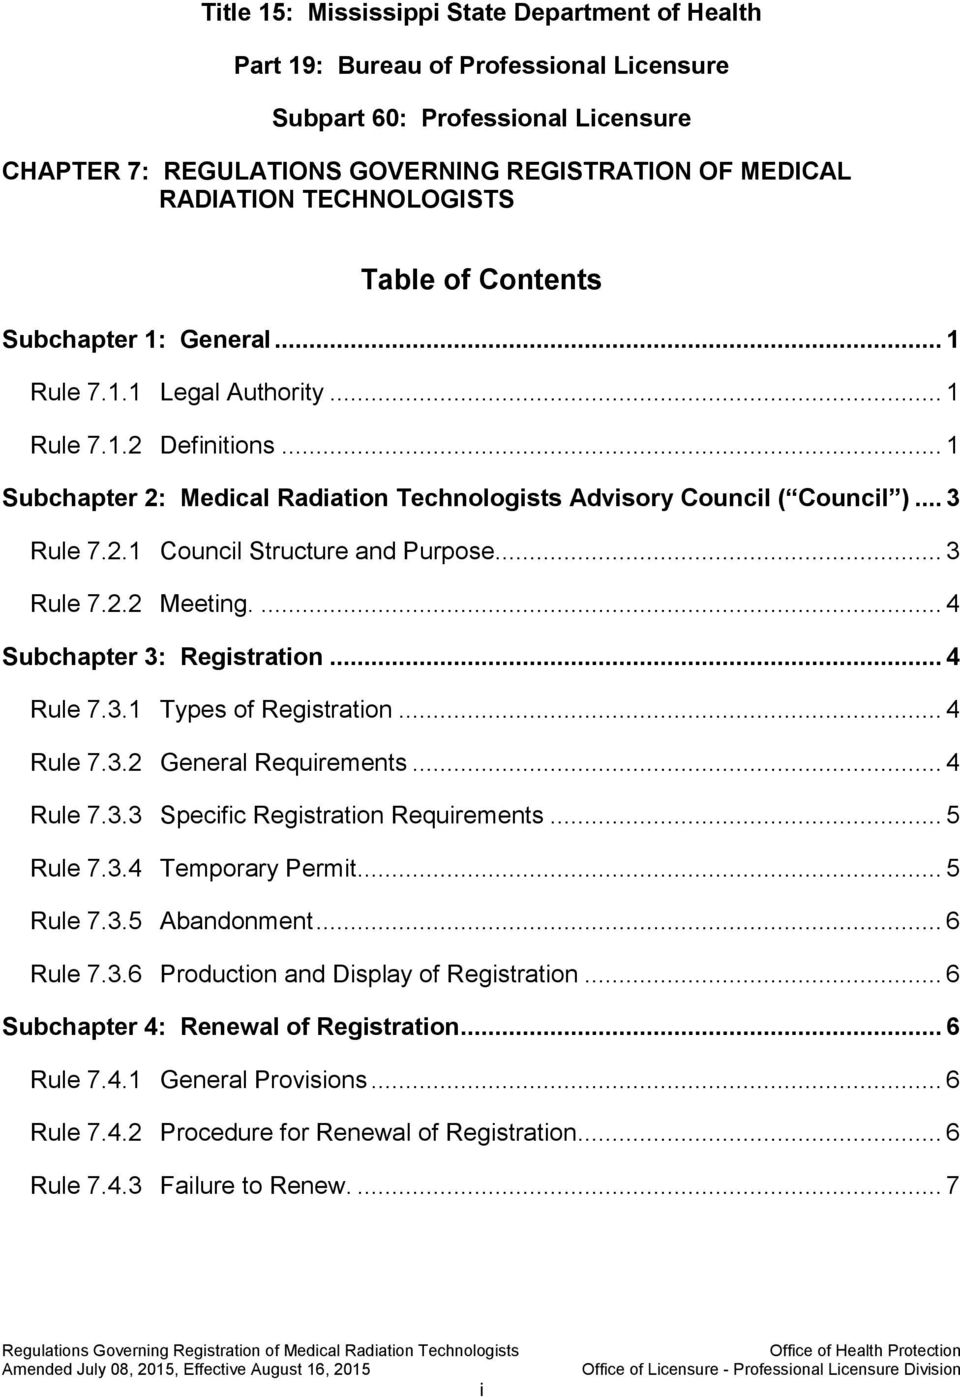 .. 3 Rule 7.2.1 Council Structure and Purpose... 3 Rule 7.2.2 Meeting.... 4 Subchapter 3: Registration... 4 Rule 7.3.1 Types of Registration... 4 Rule 7.3.2 General Requirements... 4 Rule 7.3.3 Specific Registration Requirements.